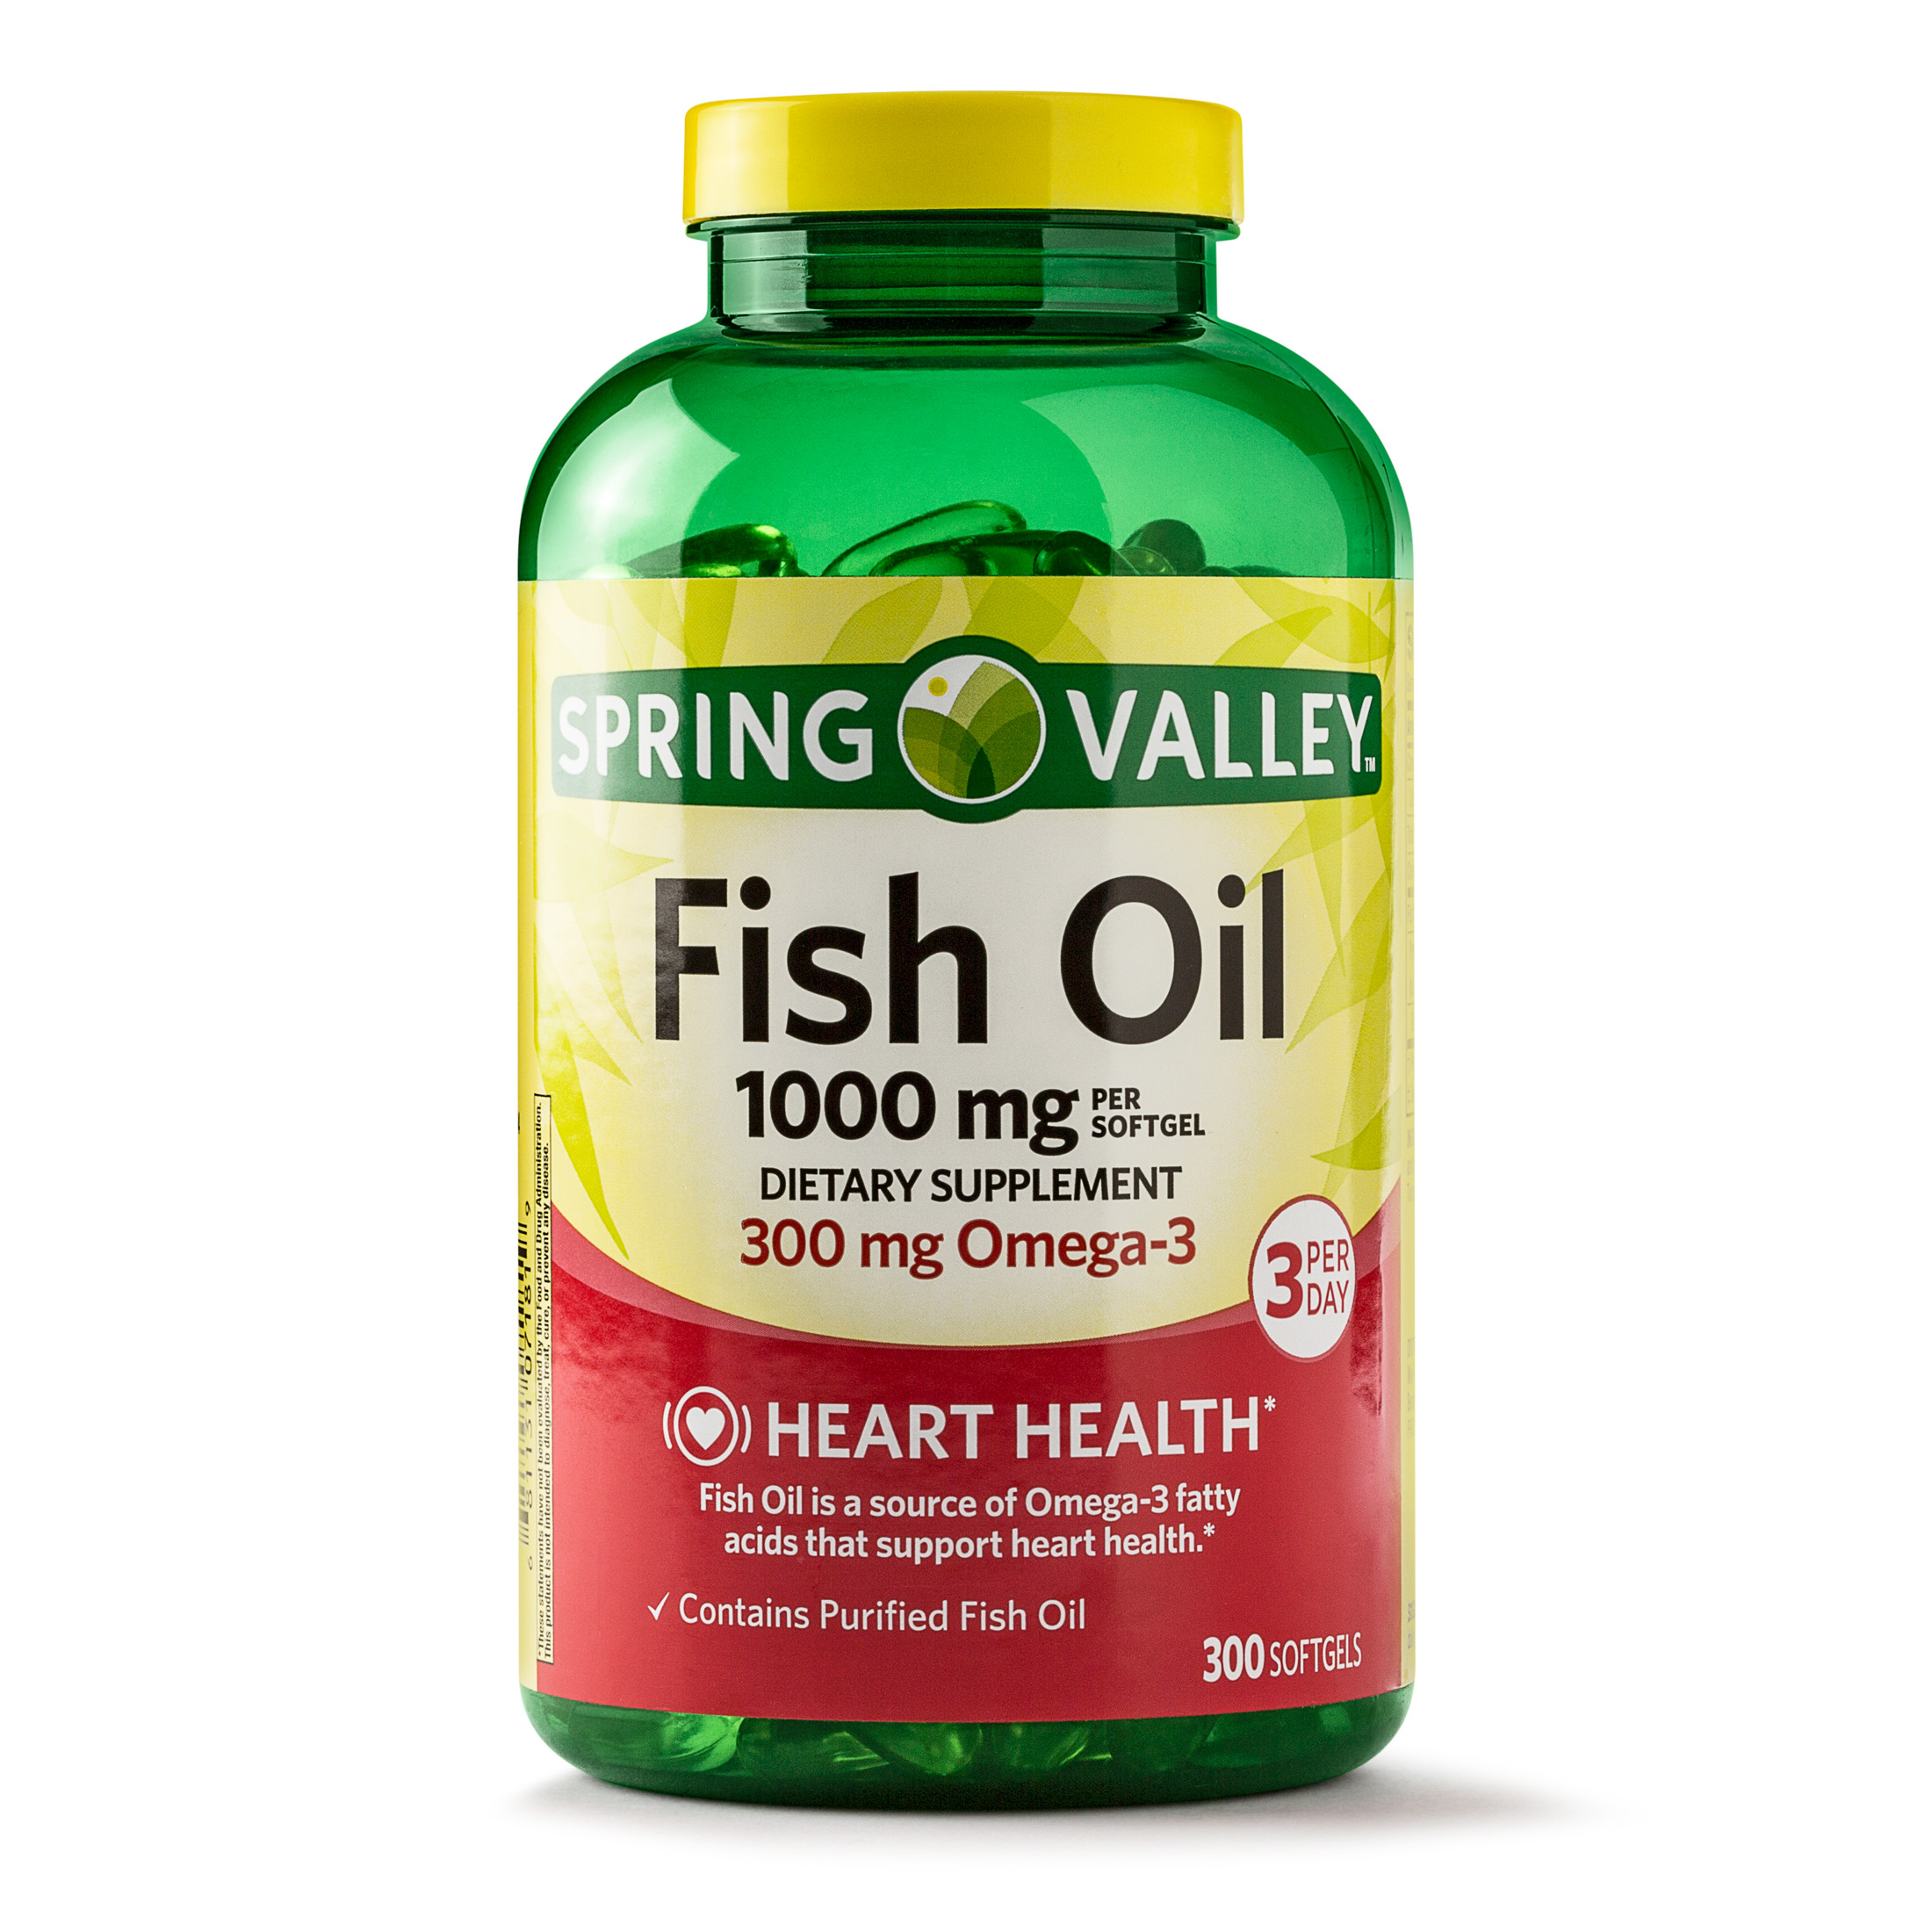 fish oil and omega 3 fatty acid supplements review pdf